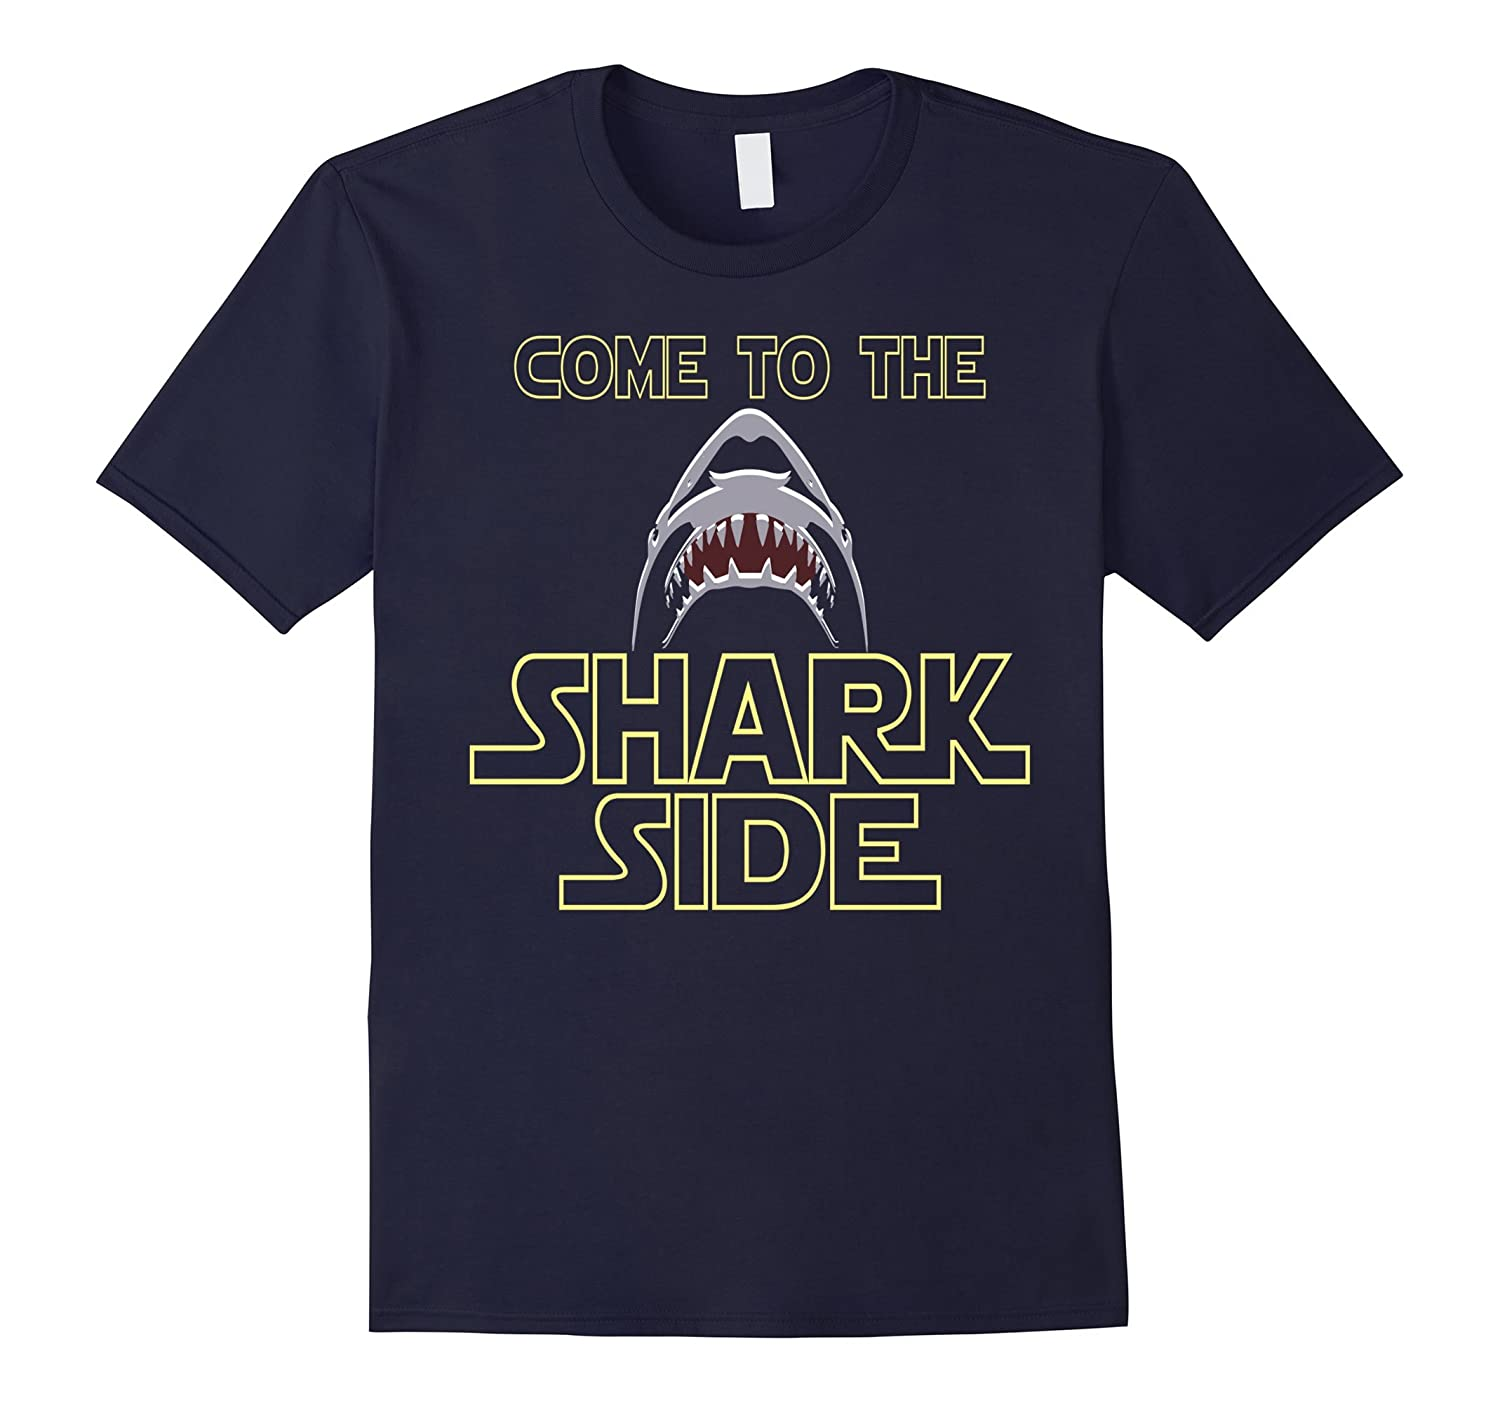 Great White Shark Shirt For Shark Lovers T-Shirt-ah my shirt one gift